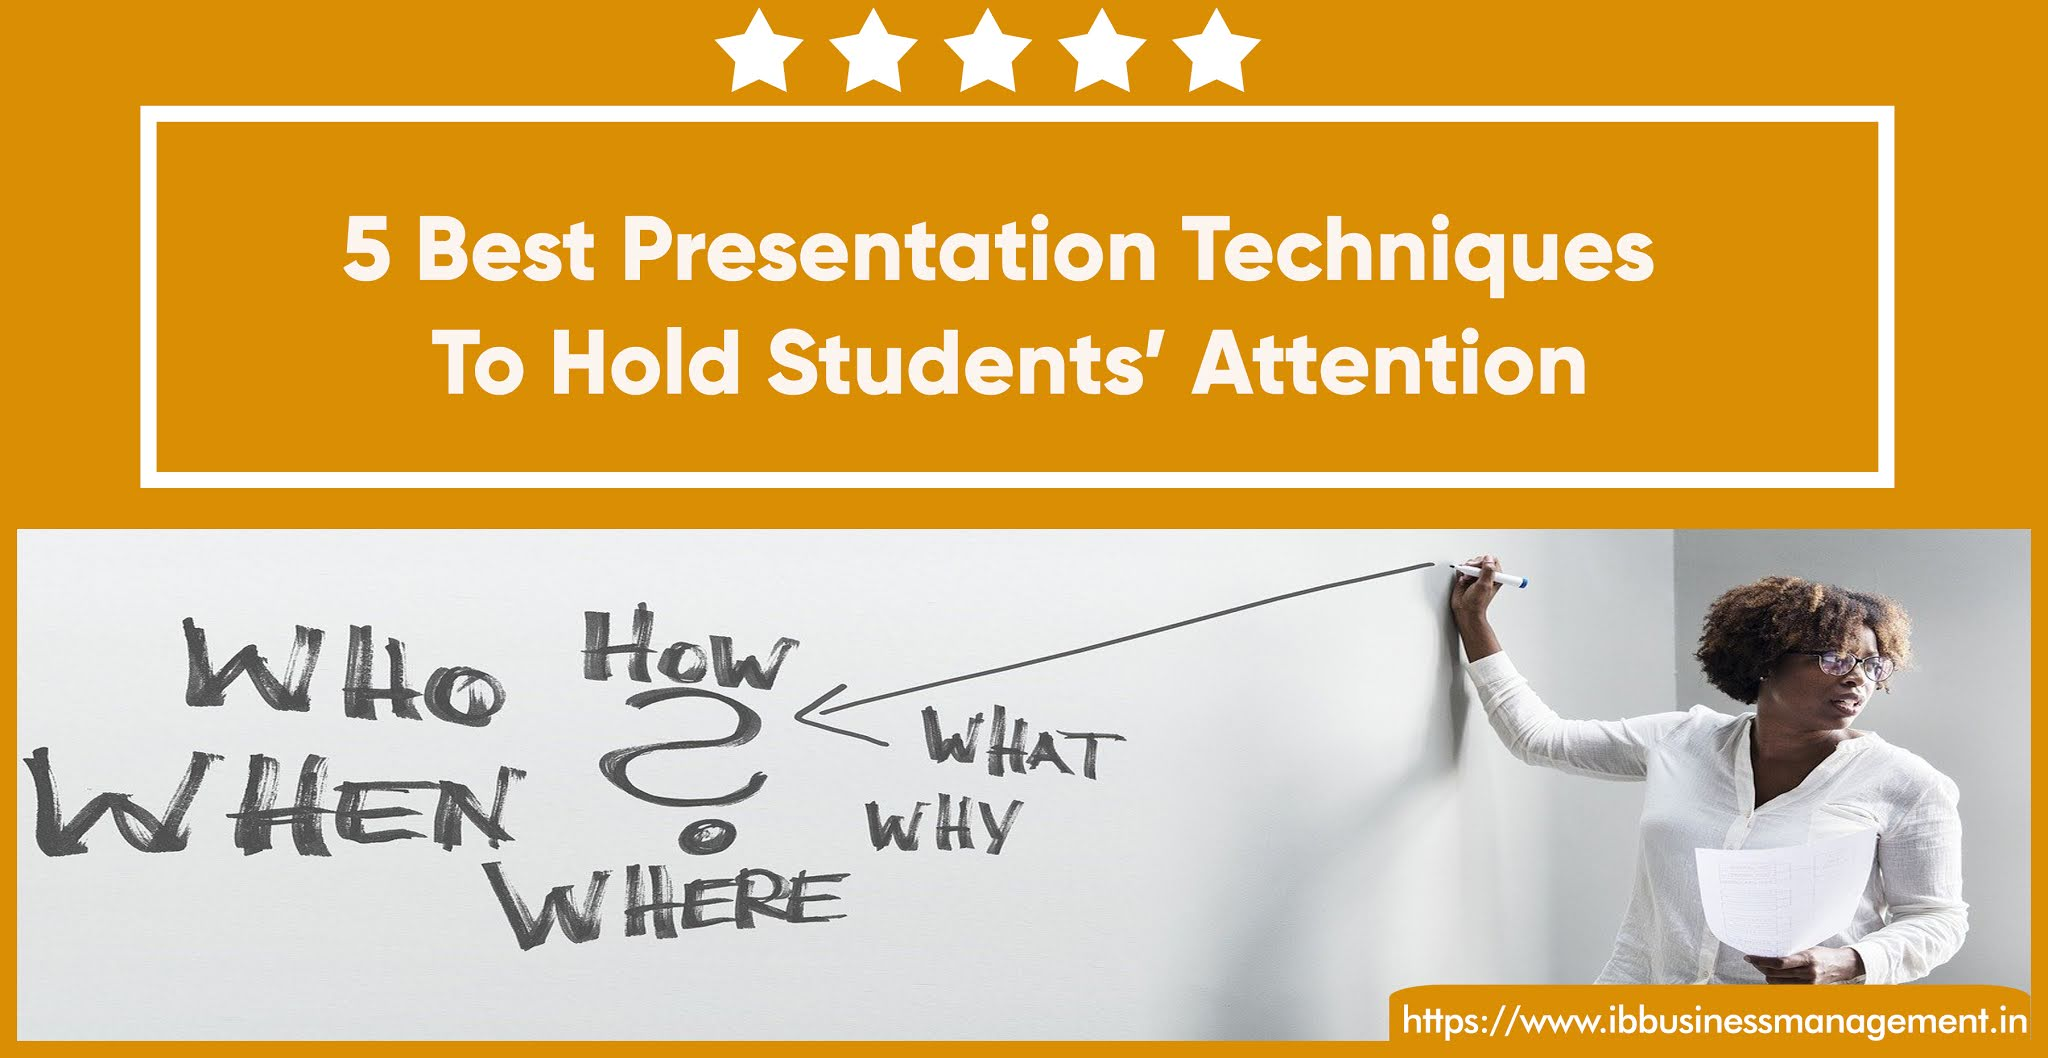 5 Best Presentation Techniques To Hold Students' Attention